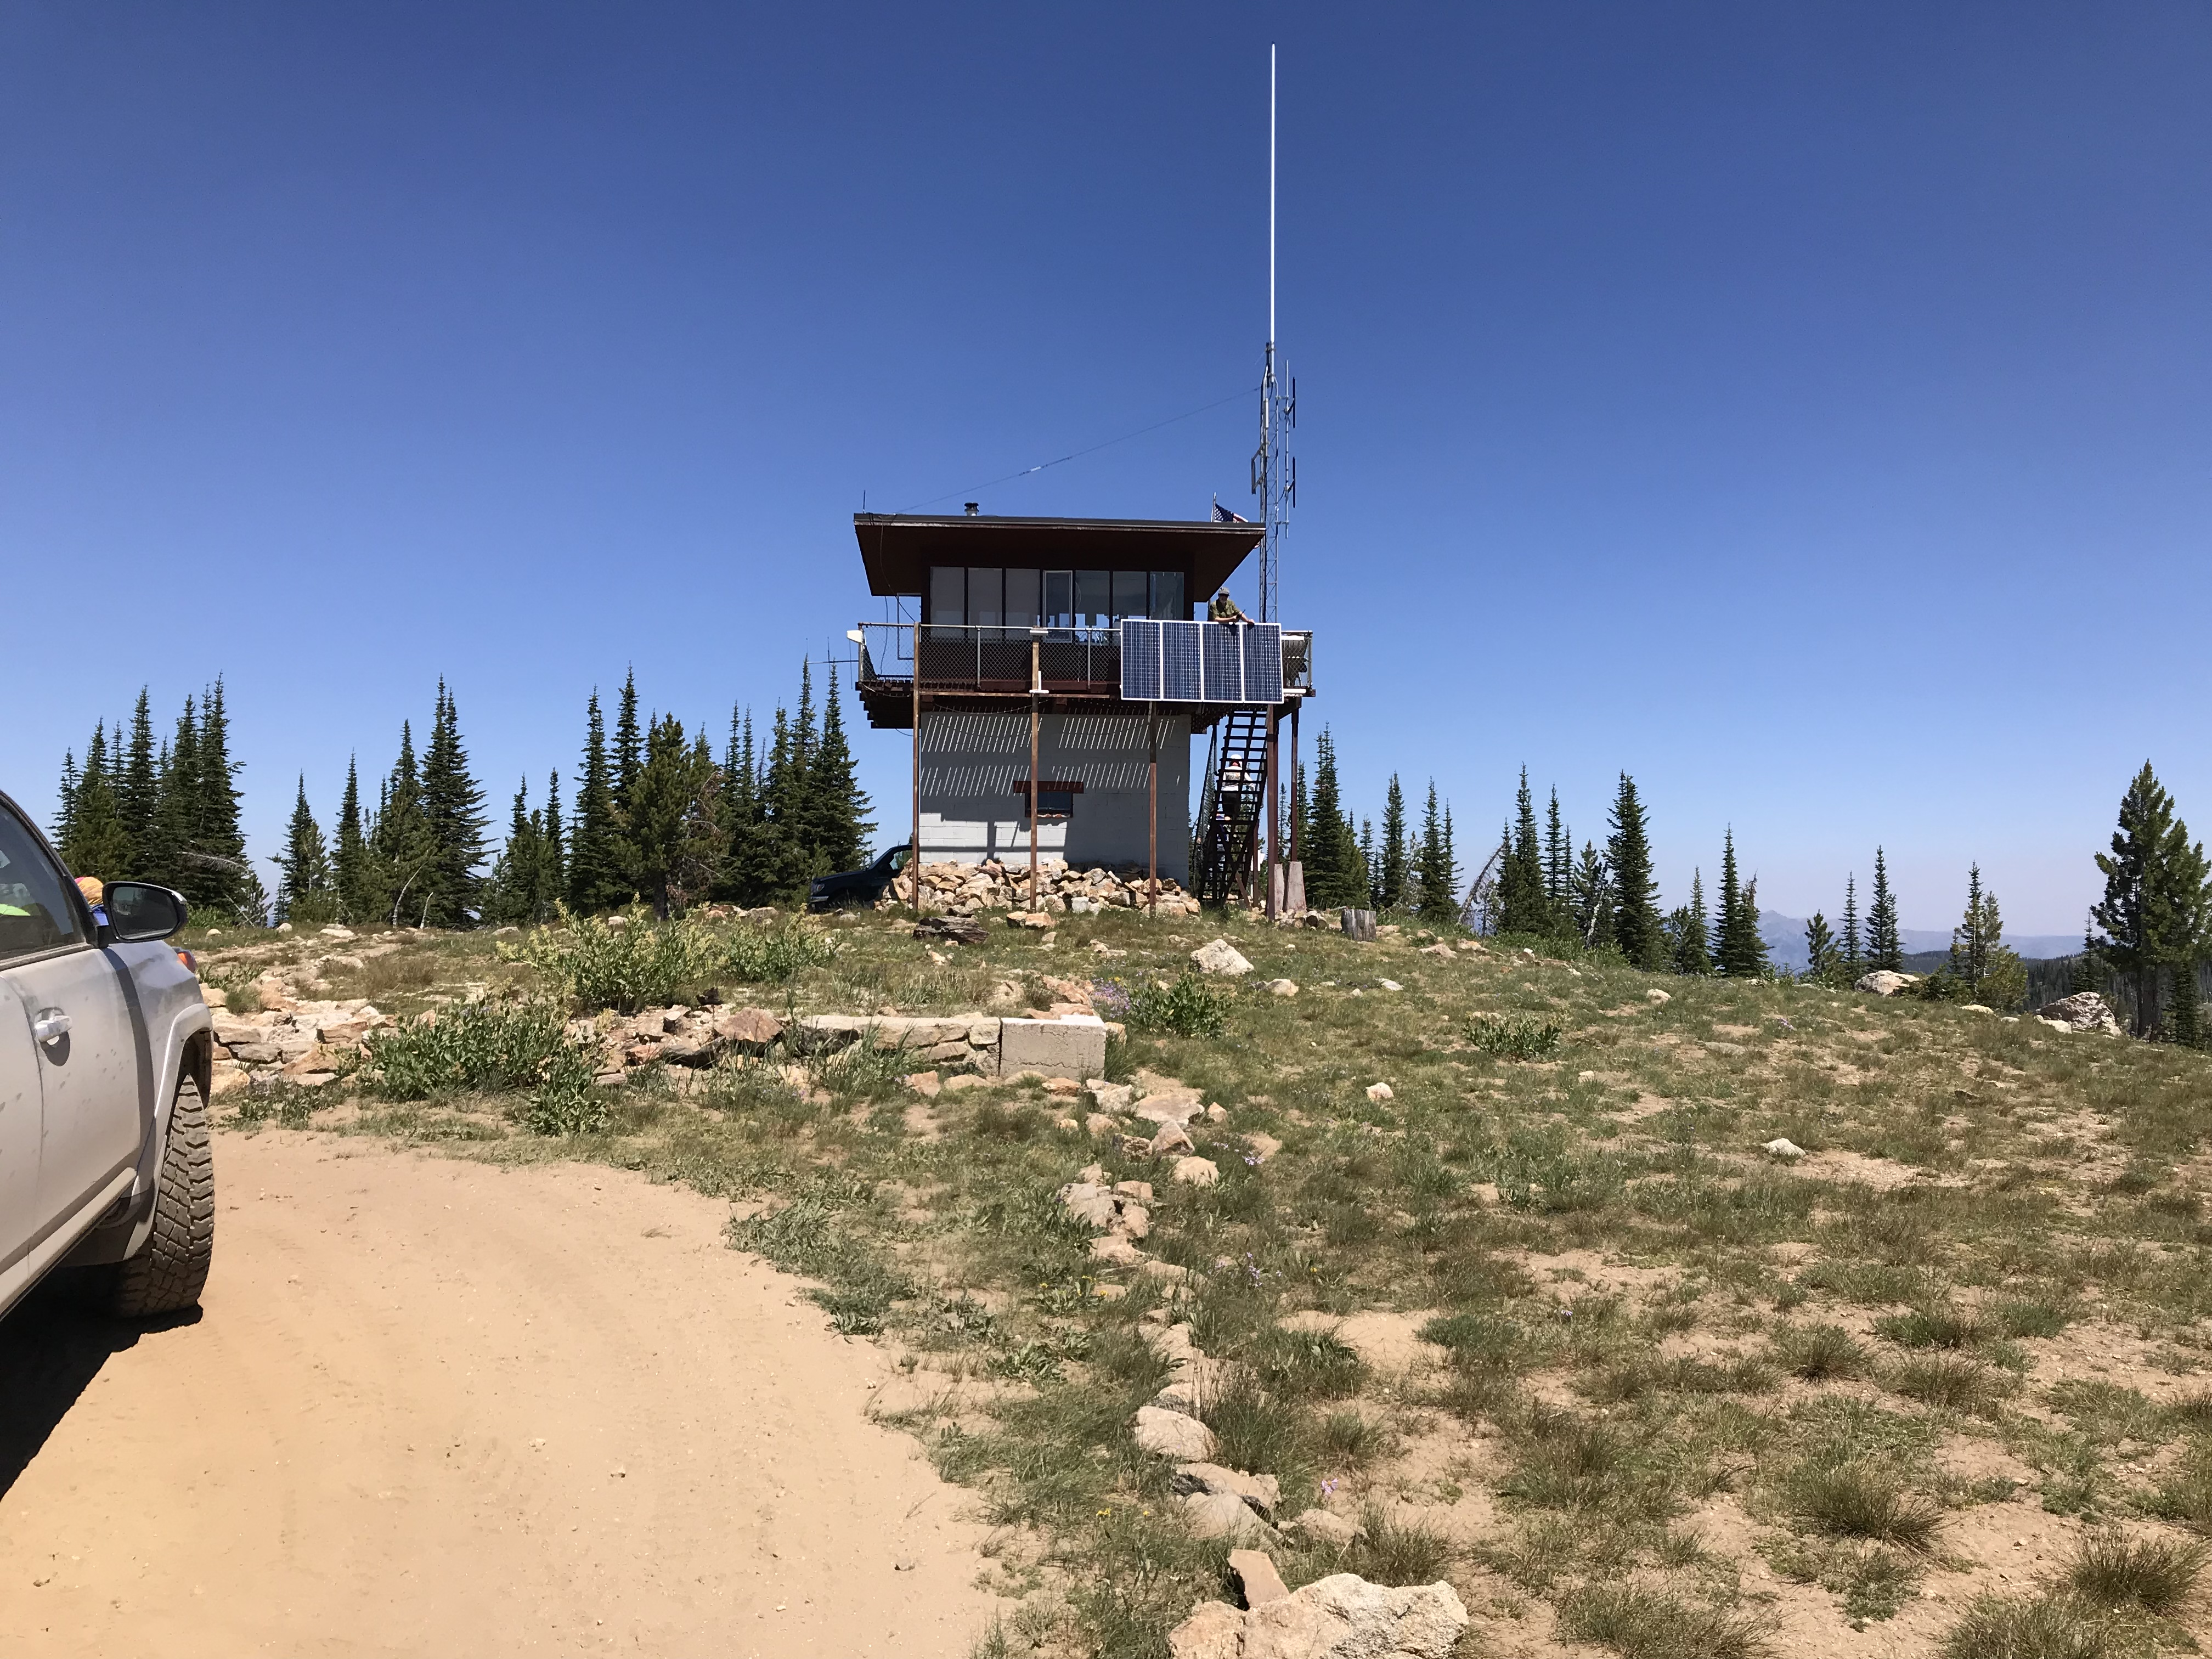 War Eagle Mountain is the home of an active fire lookout each summer. It is reached by a 4WD road to its summit.